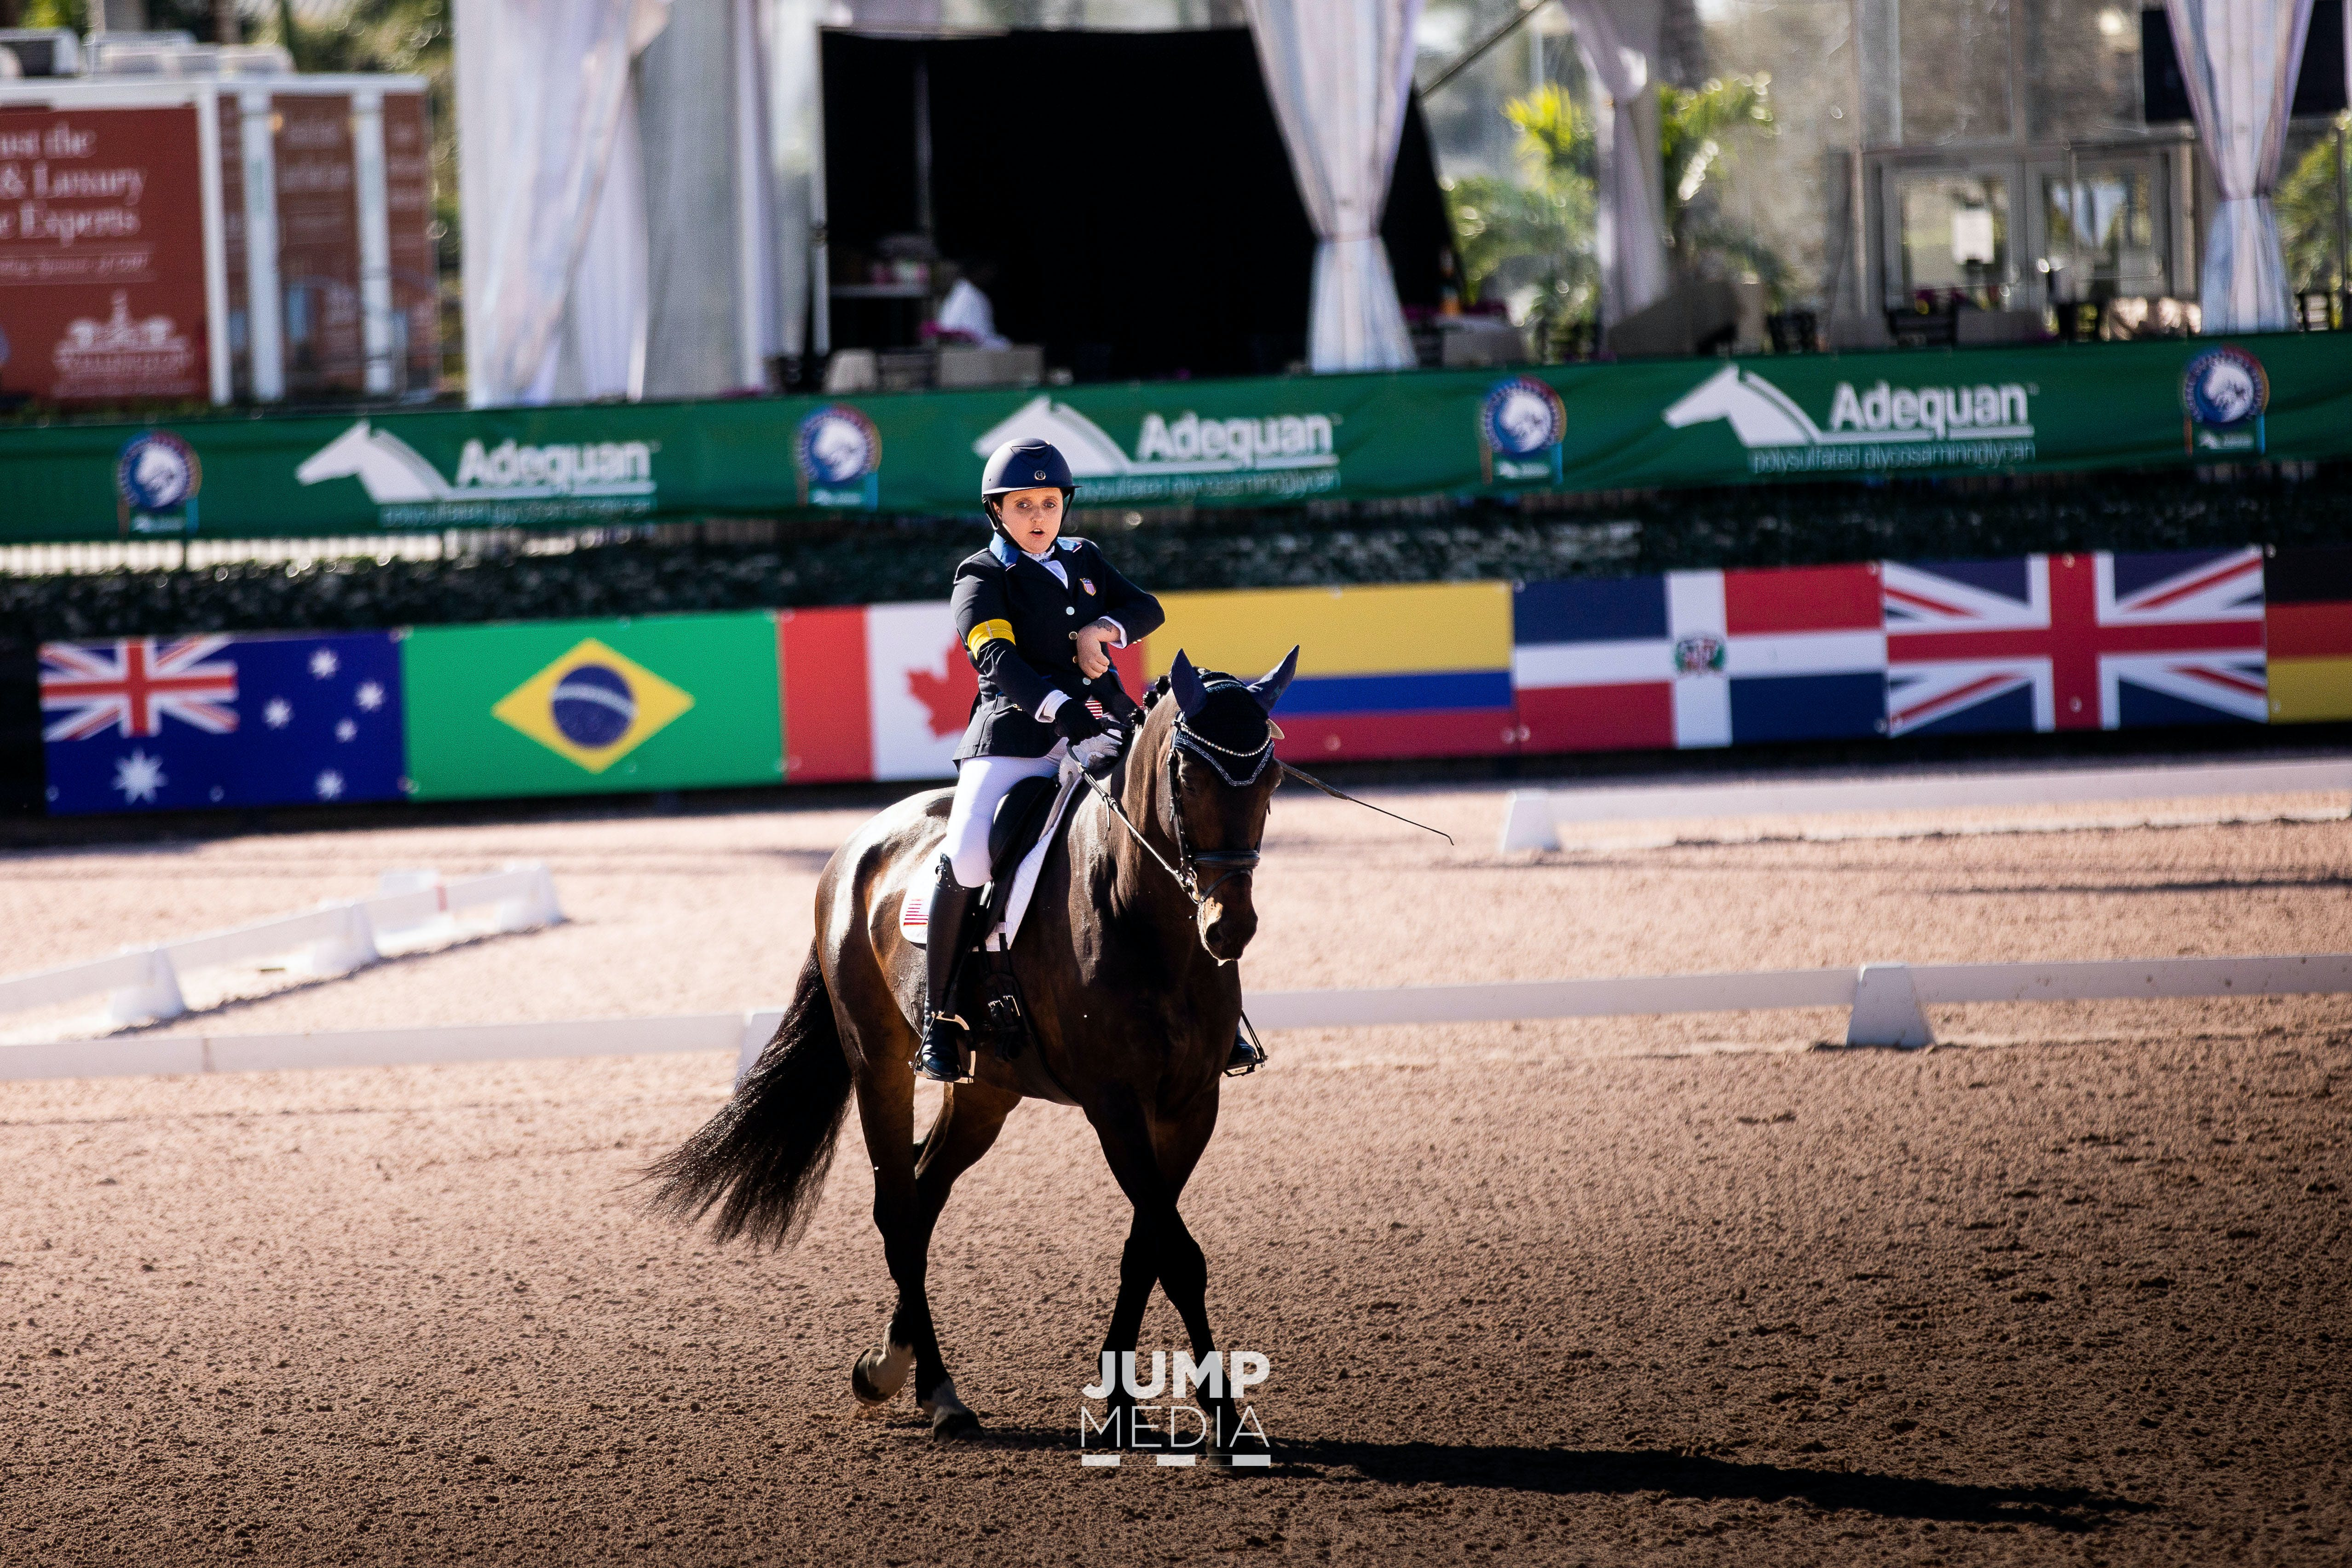 Sydney Collier riding her horse at a para equestrian competition